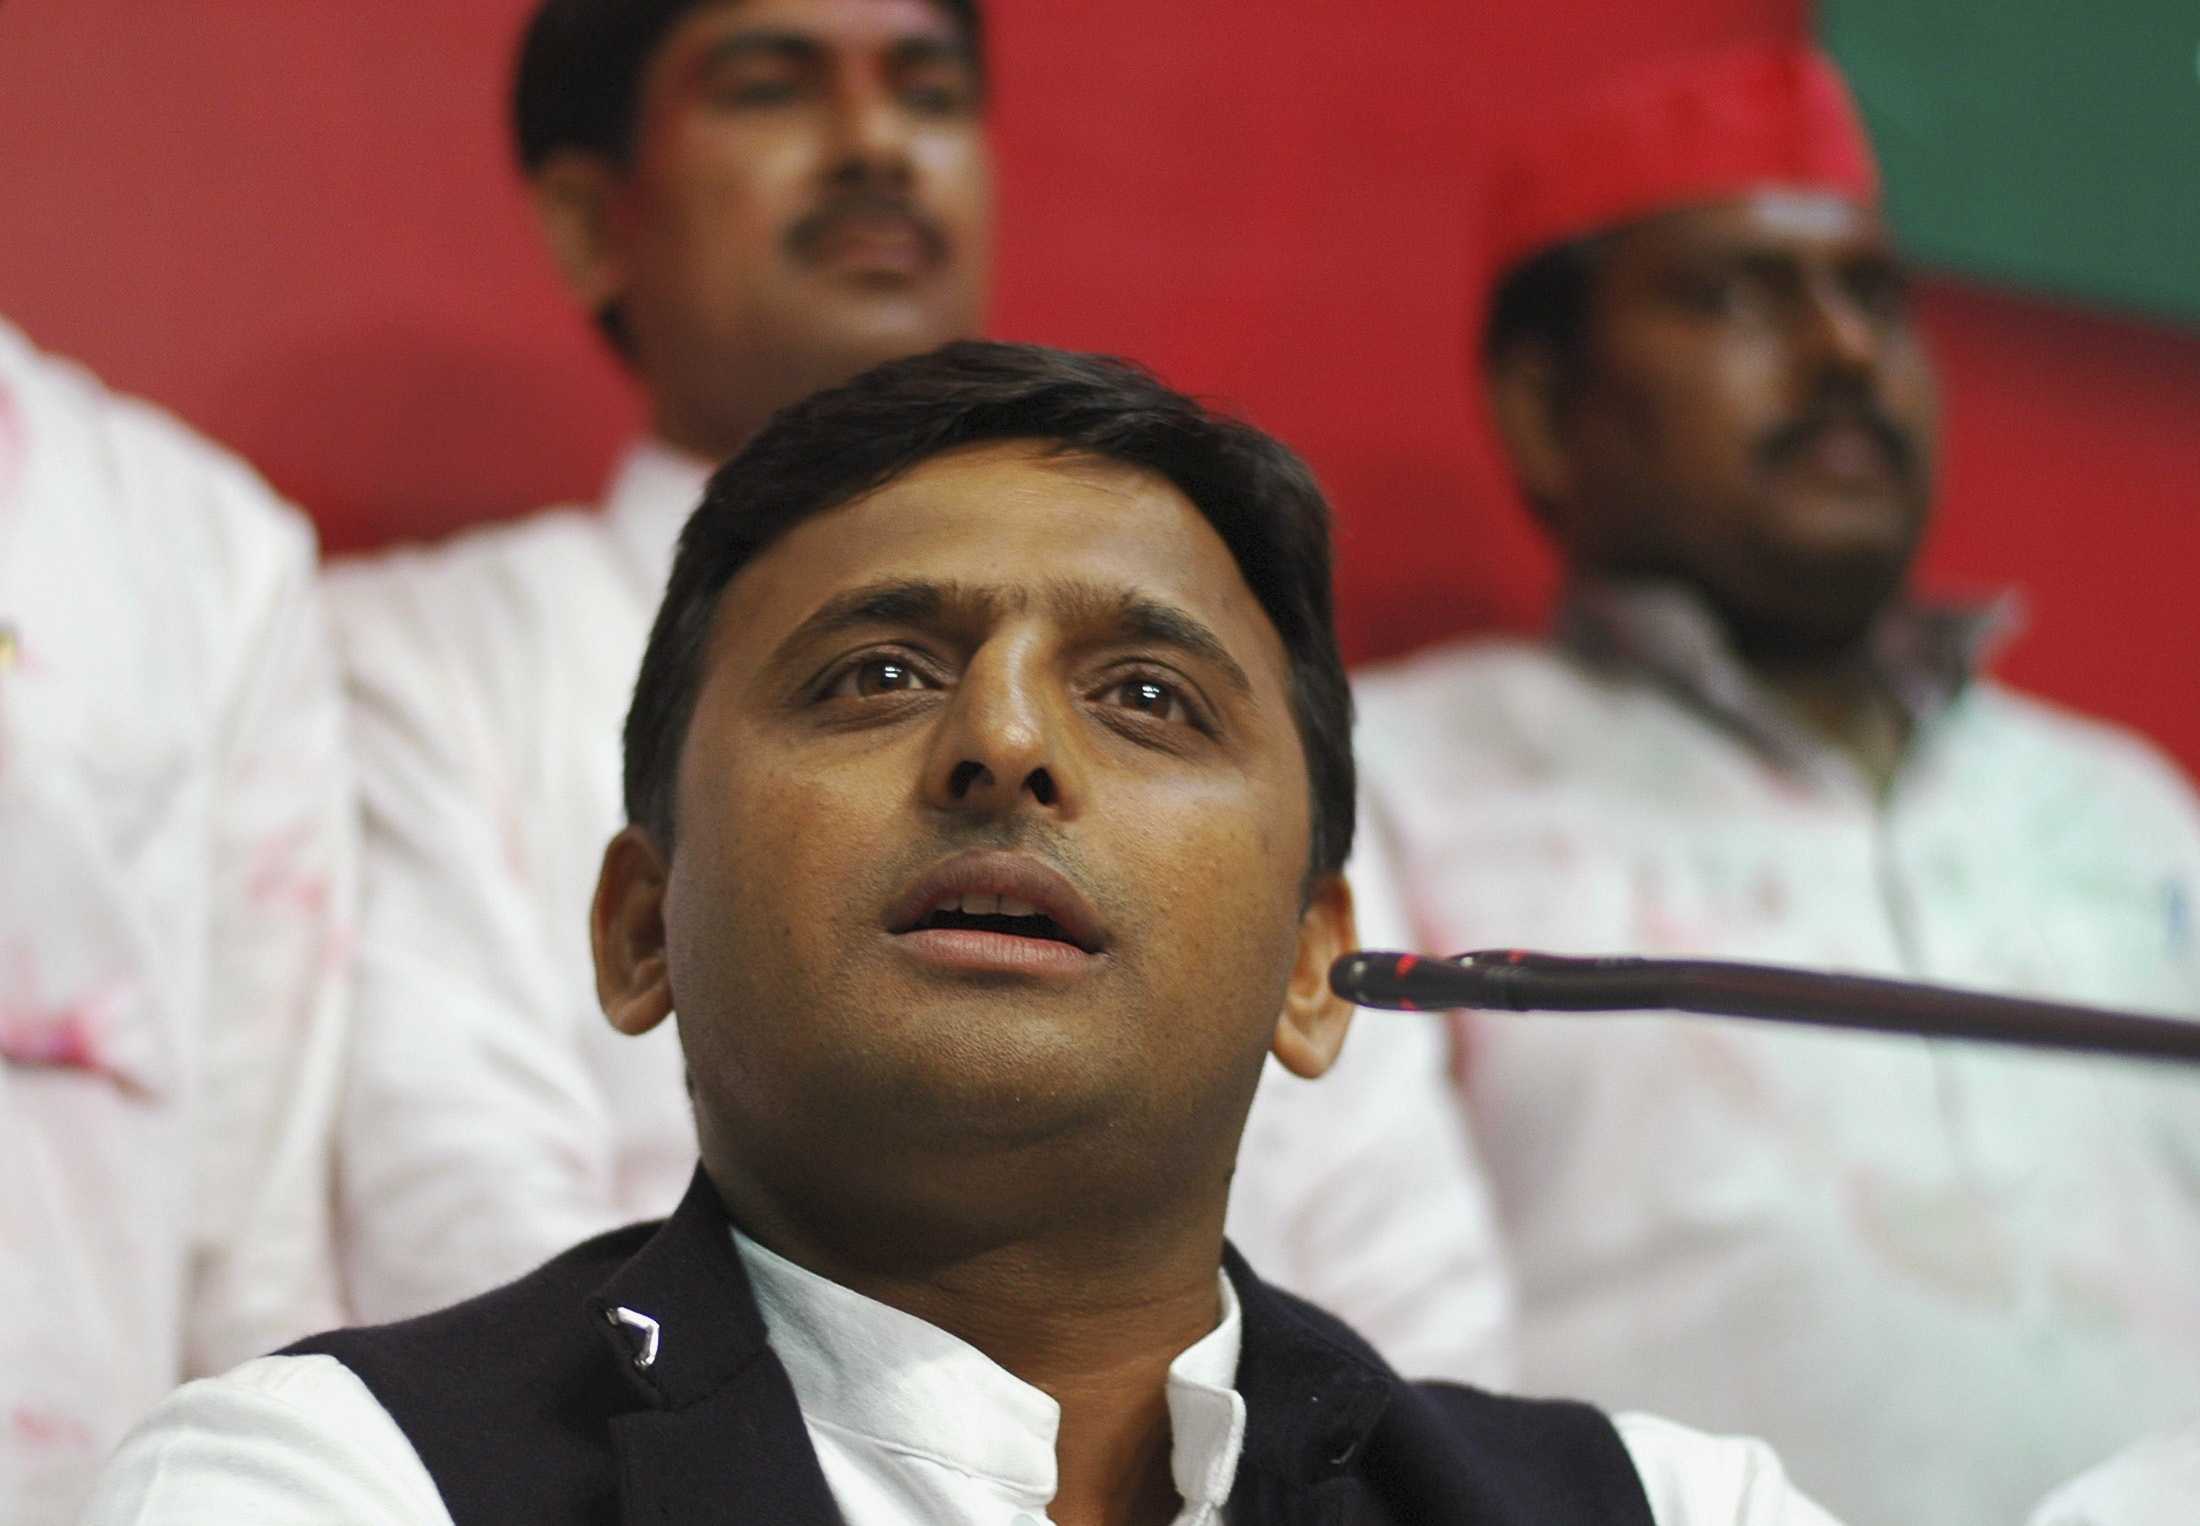 Akhilesh Yadav speaks during a news conference in the northern Indian city of Lucknow on March 6, 2012